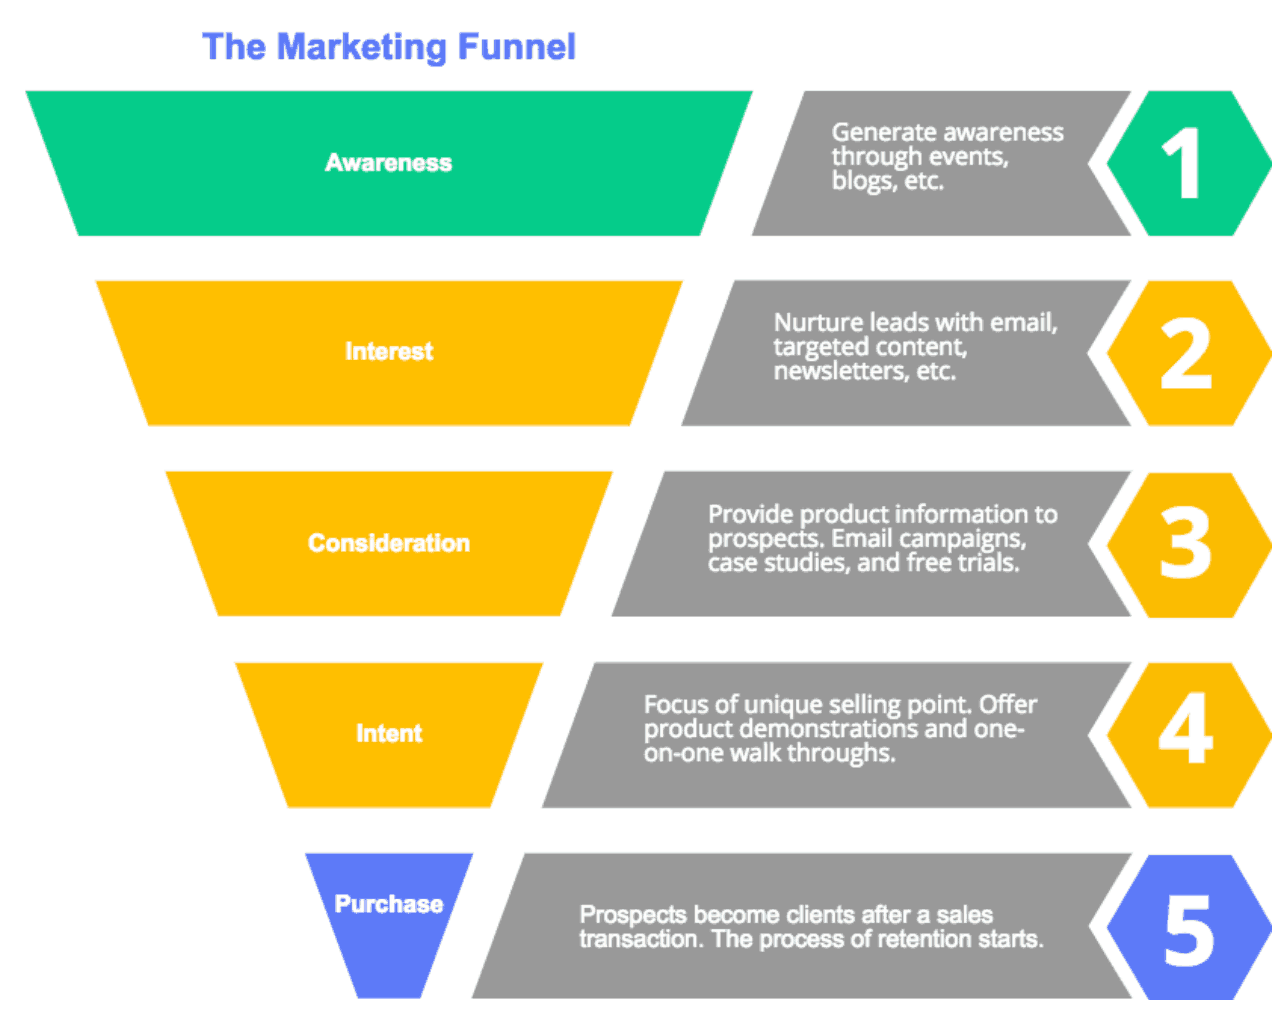 Image showing the marketing funnel and how content marketing tactics must take place at each stage.